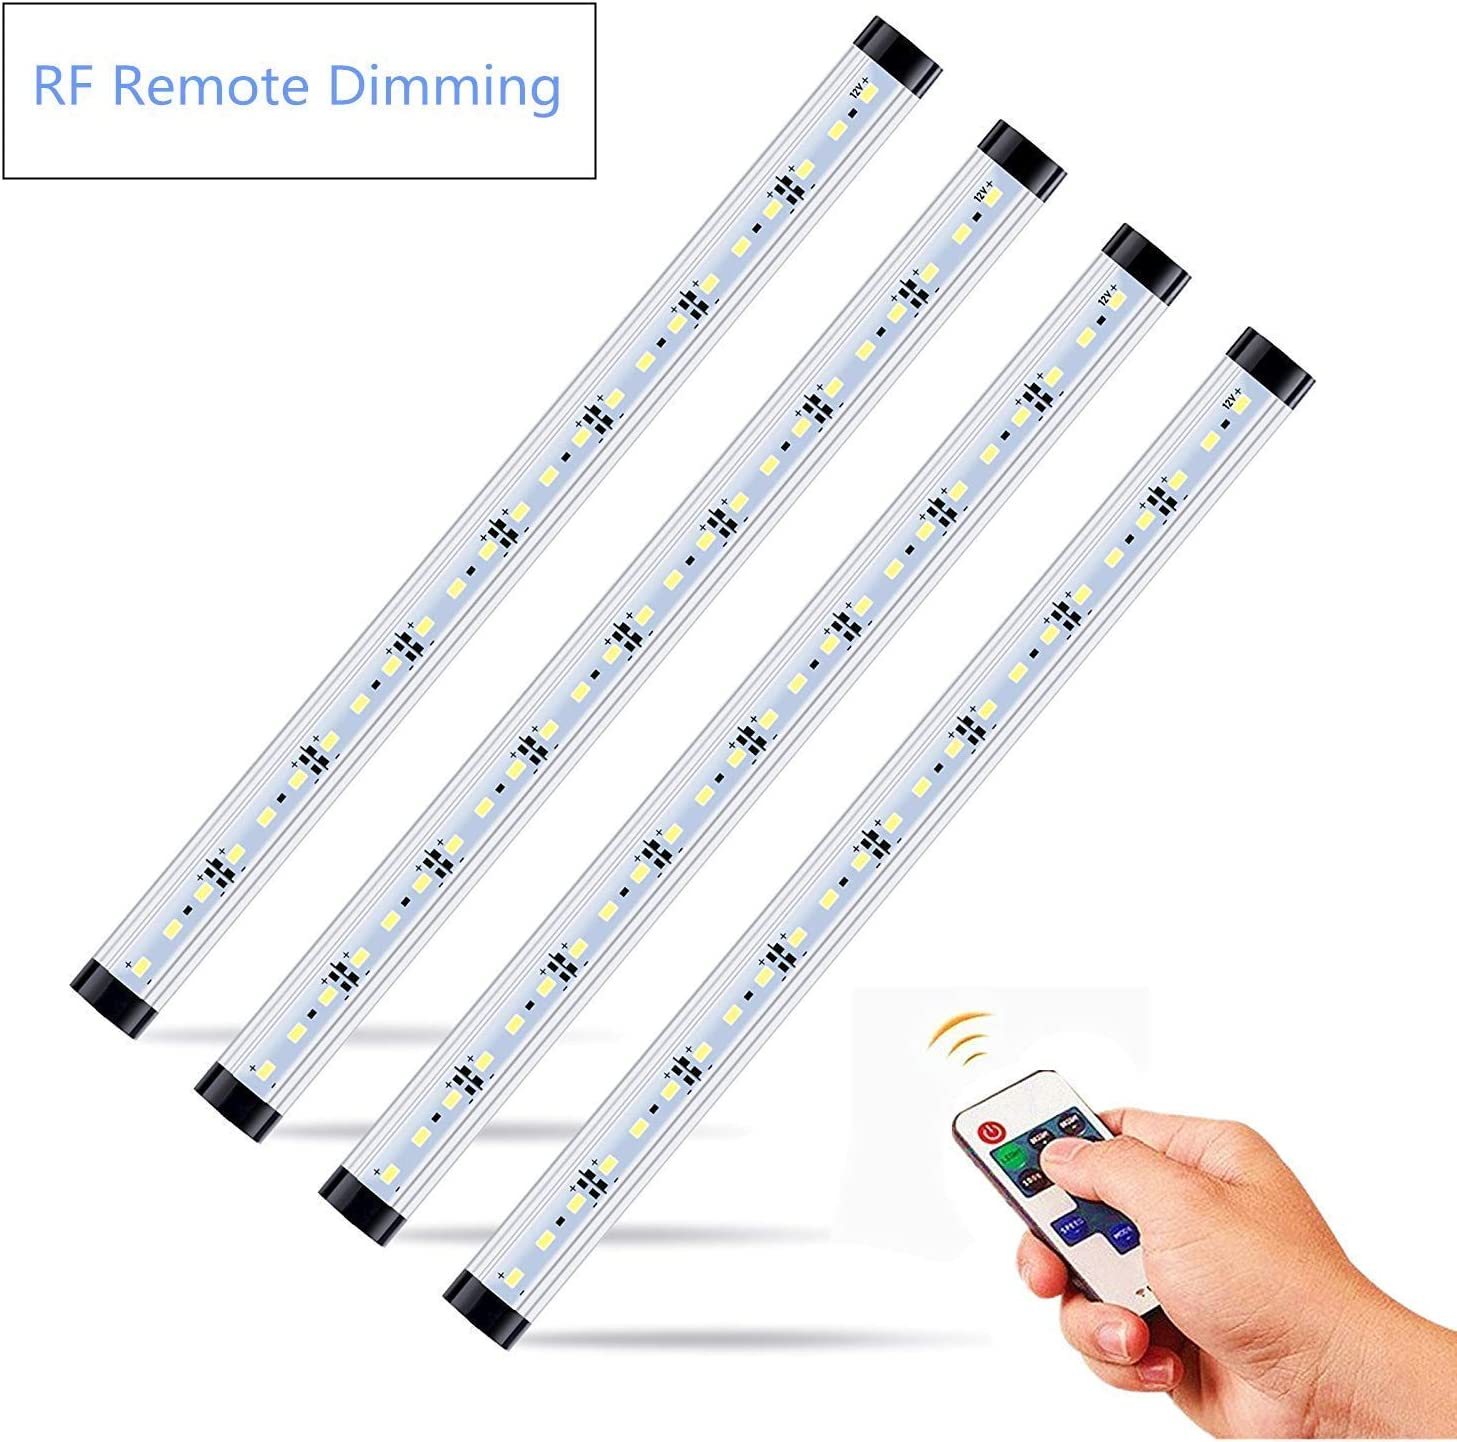 NEWCITY LED Under Cabinet Lighting Kit 4pcs Extendable Under Counter LED Light Bars Pure White 6500K, Dimmable RF Remote Control for,Cupboard, Wardrobe,Locker,ounter,Closet Lighting with.